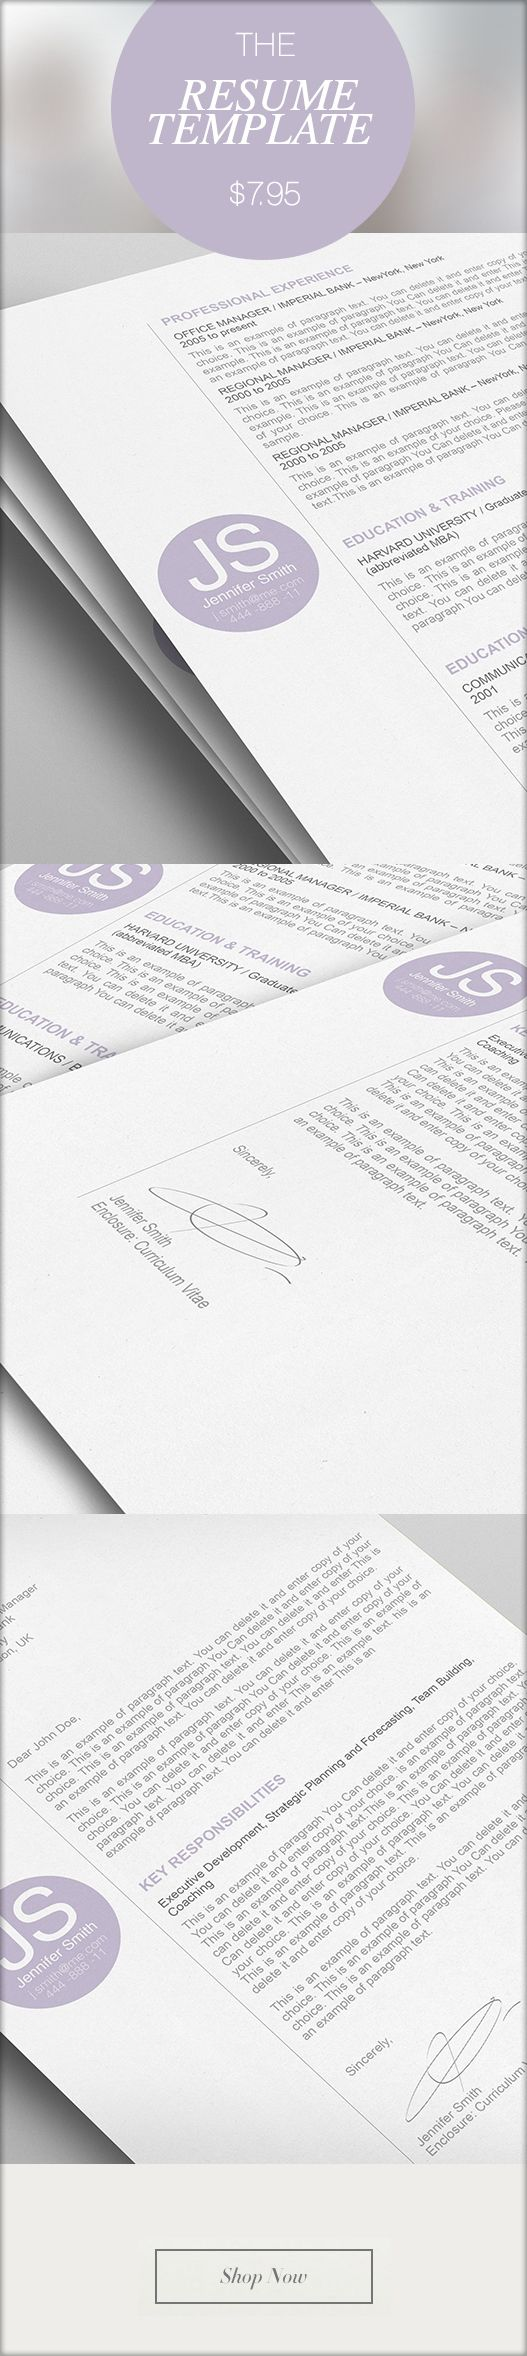 best images about ms word resume templates cover resume template create a professional resume cover letter in minutes and edit in microsoft word apple pages